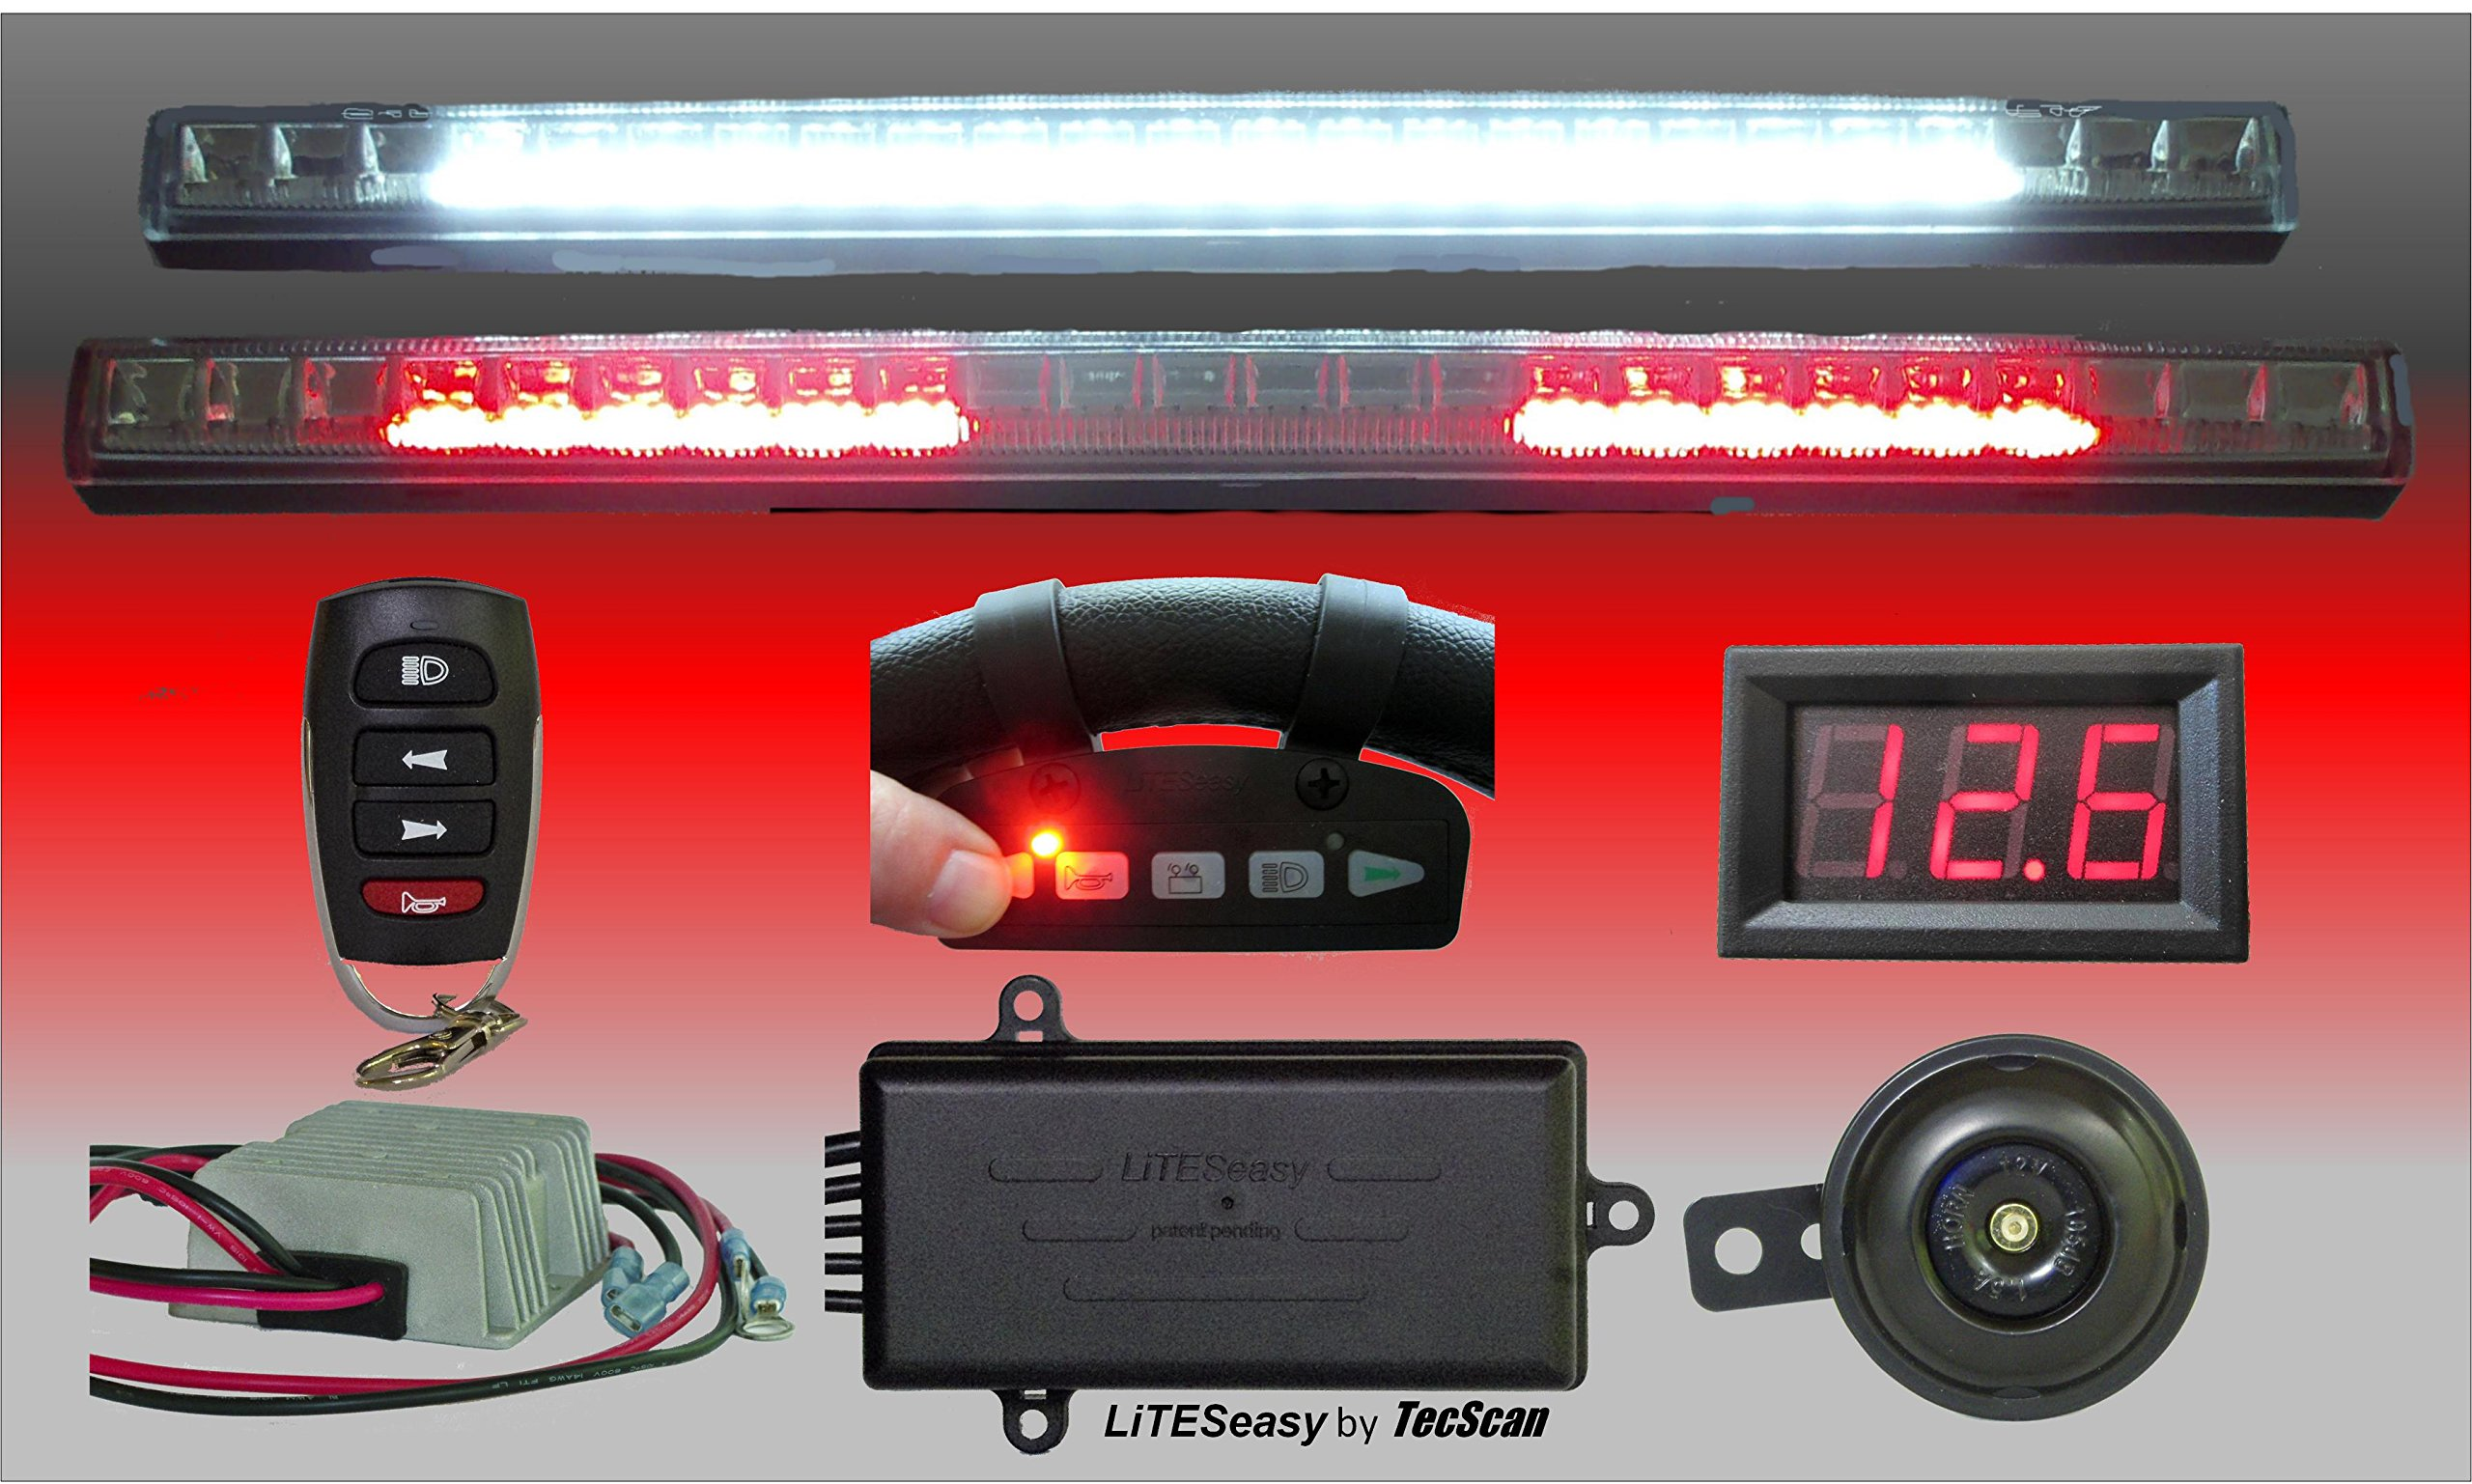 LiTESeasy DELUXE Golf Cart X2L BRIGHT LED Light Kit W/ TecScan Wireless Remote Controlled Headlights, Turn Signals, Hazard Signals and Brake Lights with Reducer